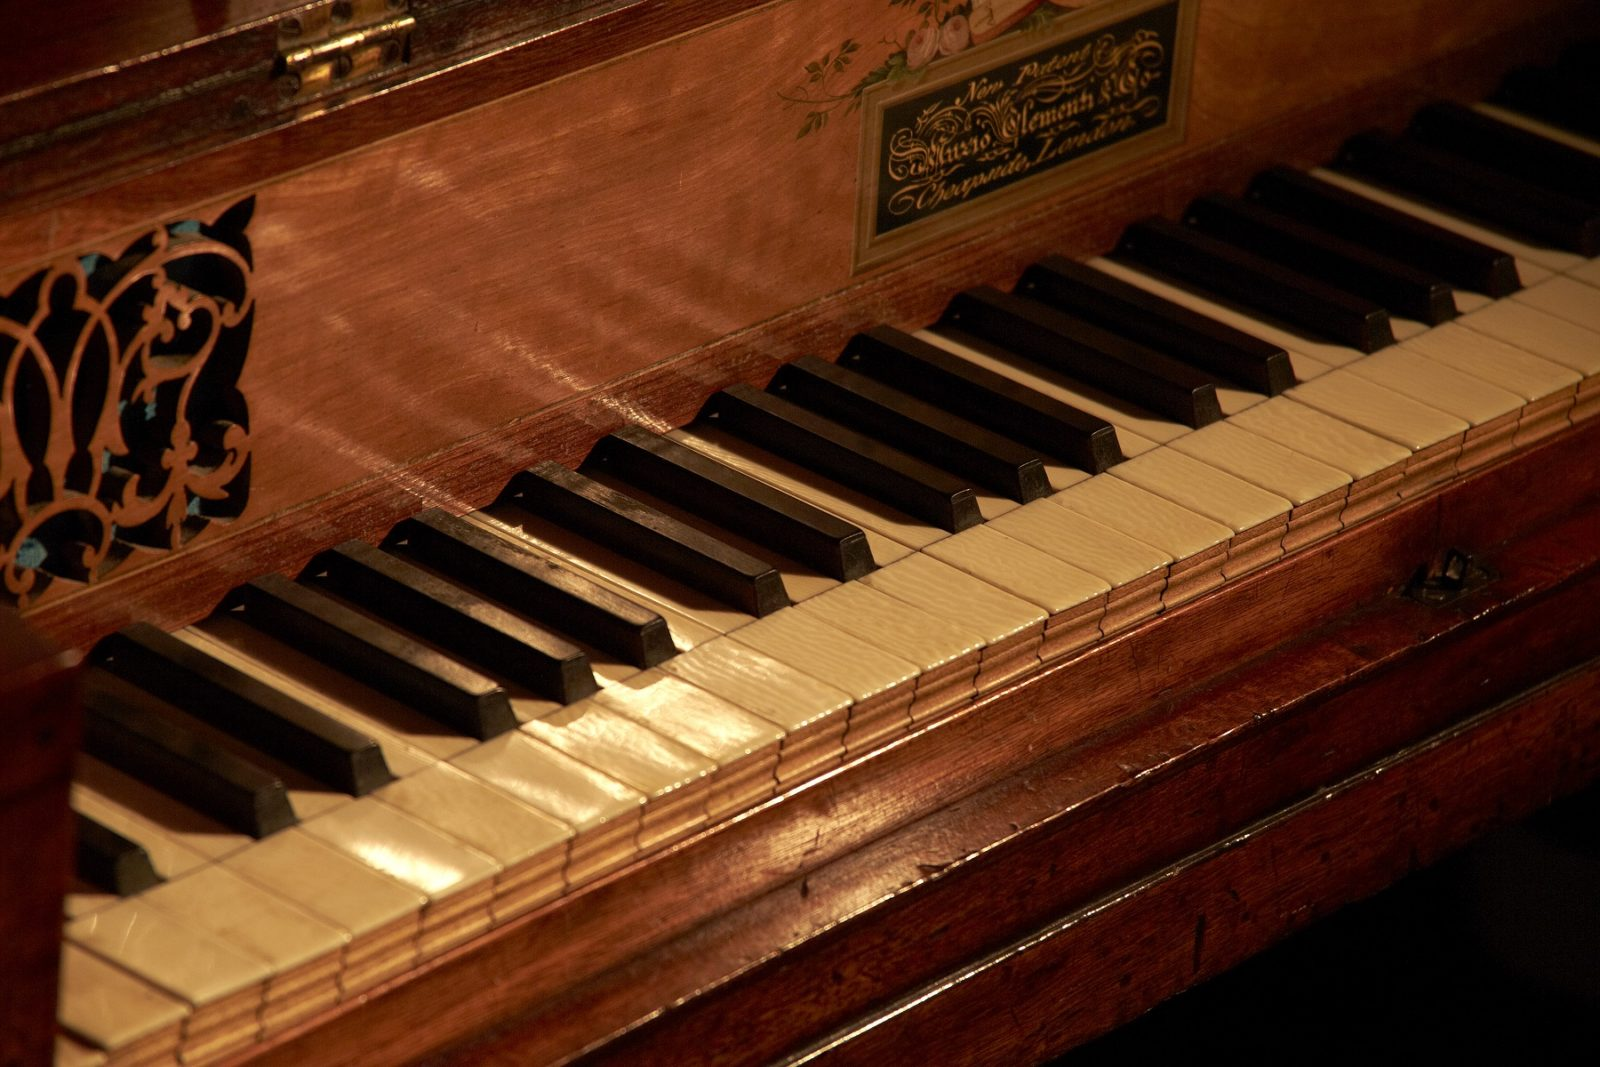 Clementi piano at Jane Austen's House, close up of piano keys